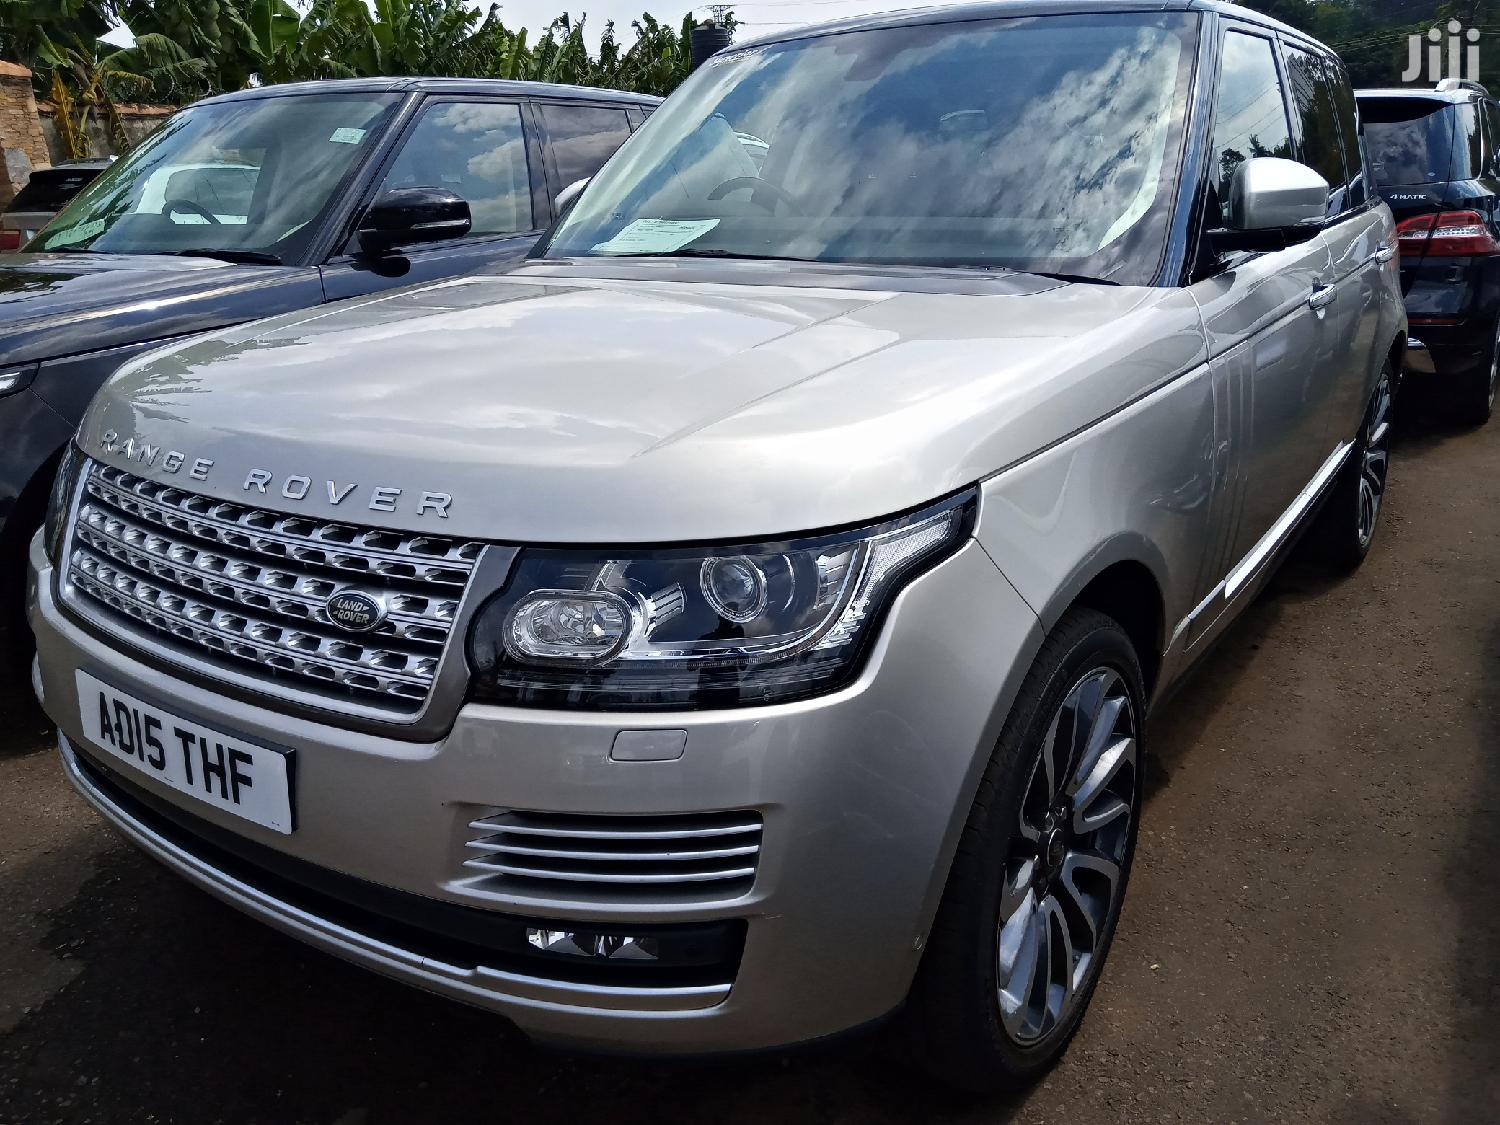 Archive: New Land Rover Range Rover Vogue 2015 Gray